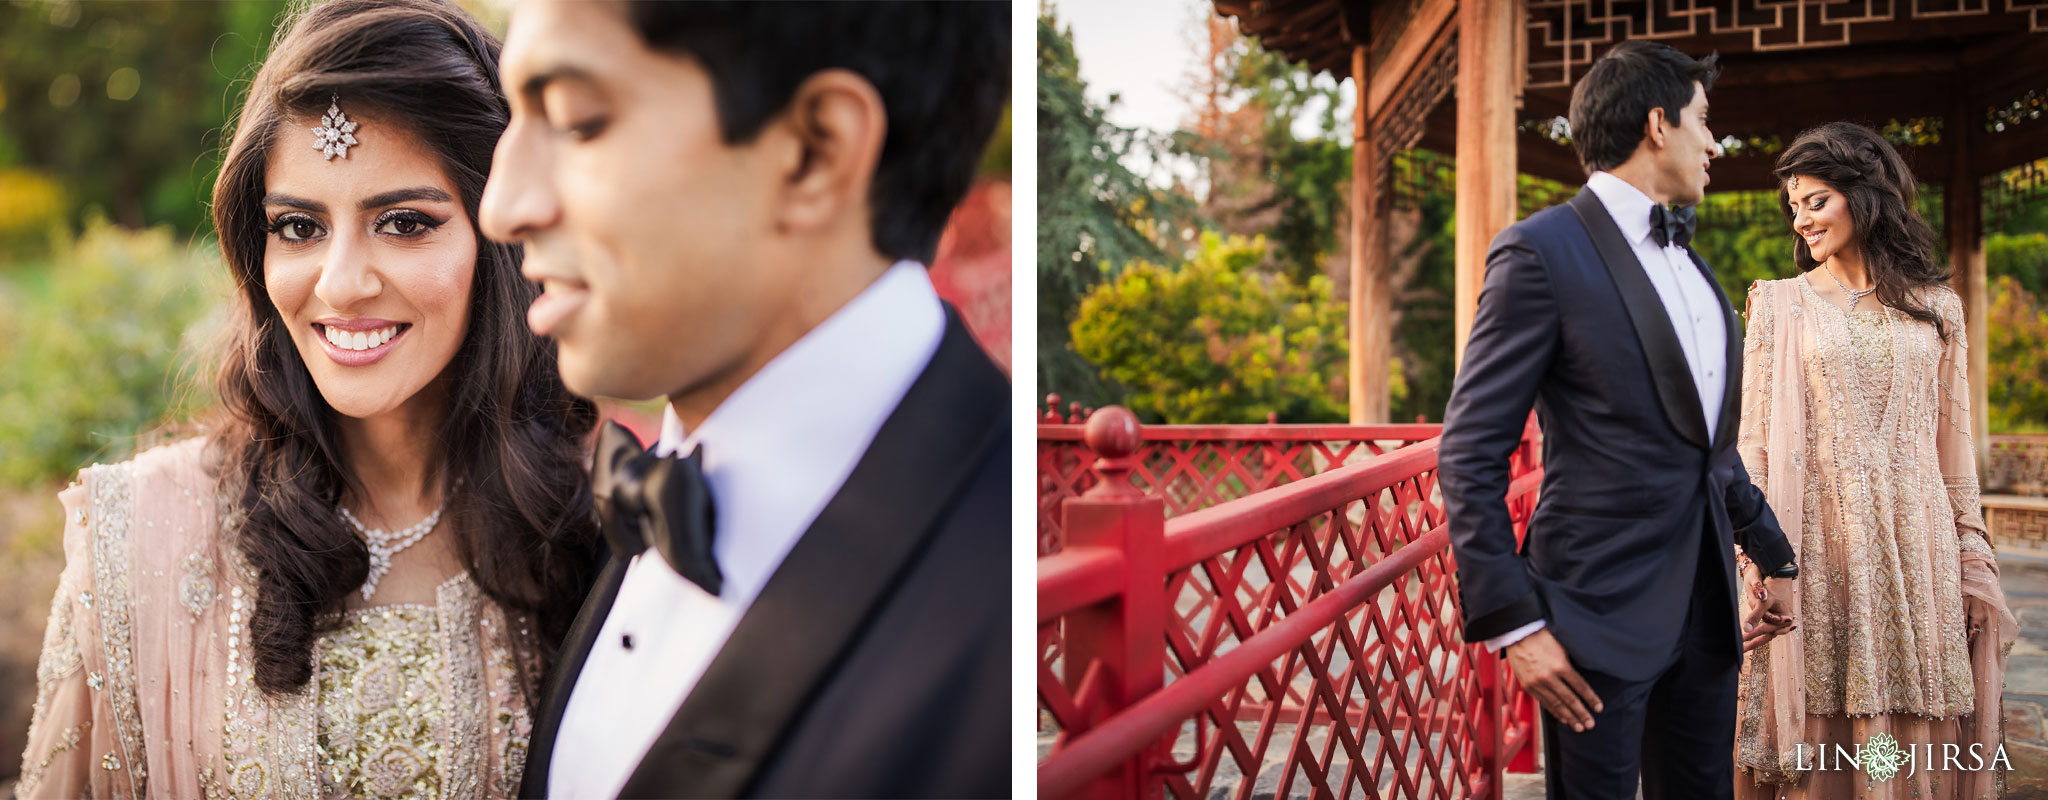 008 four seasons westlake village muslim wedding valima photography